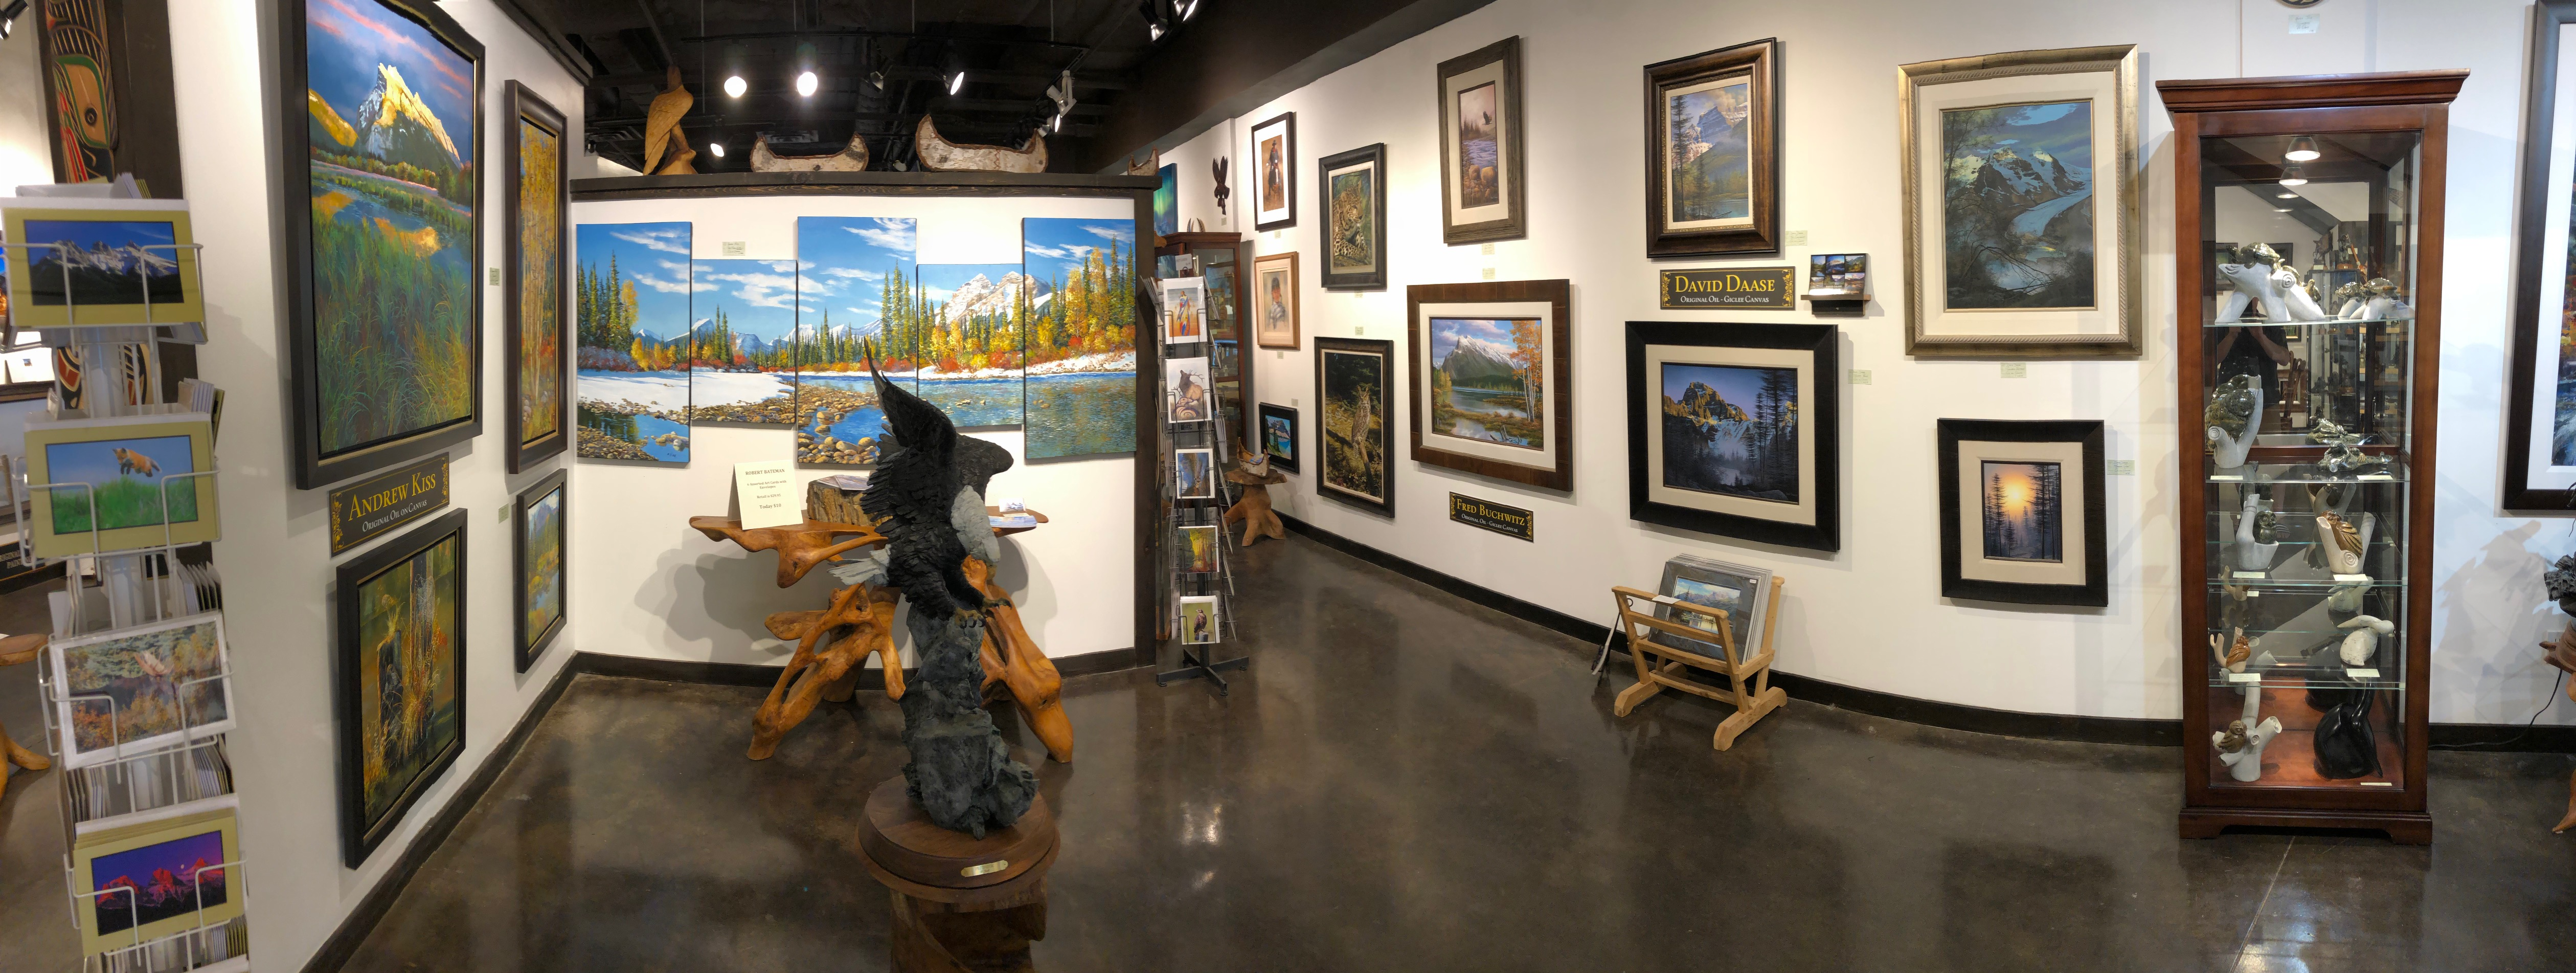 Canmore Main Gallery 5